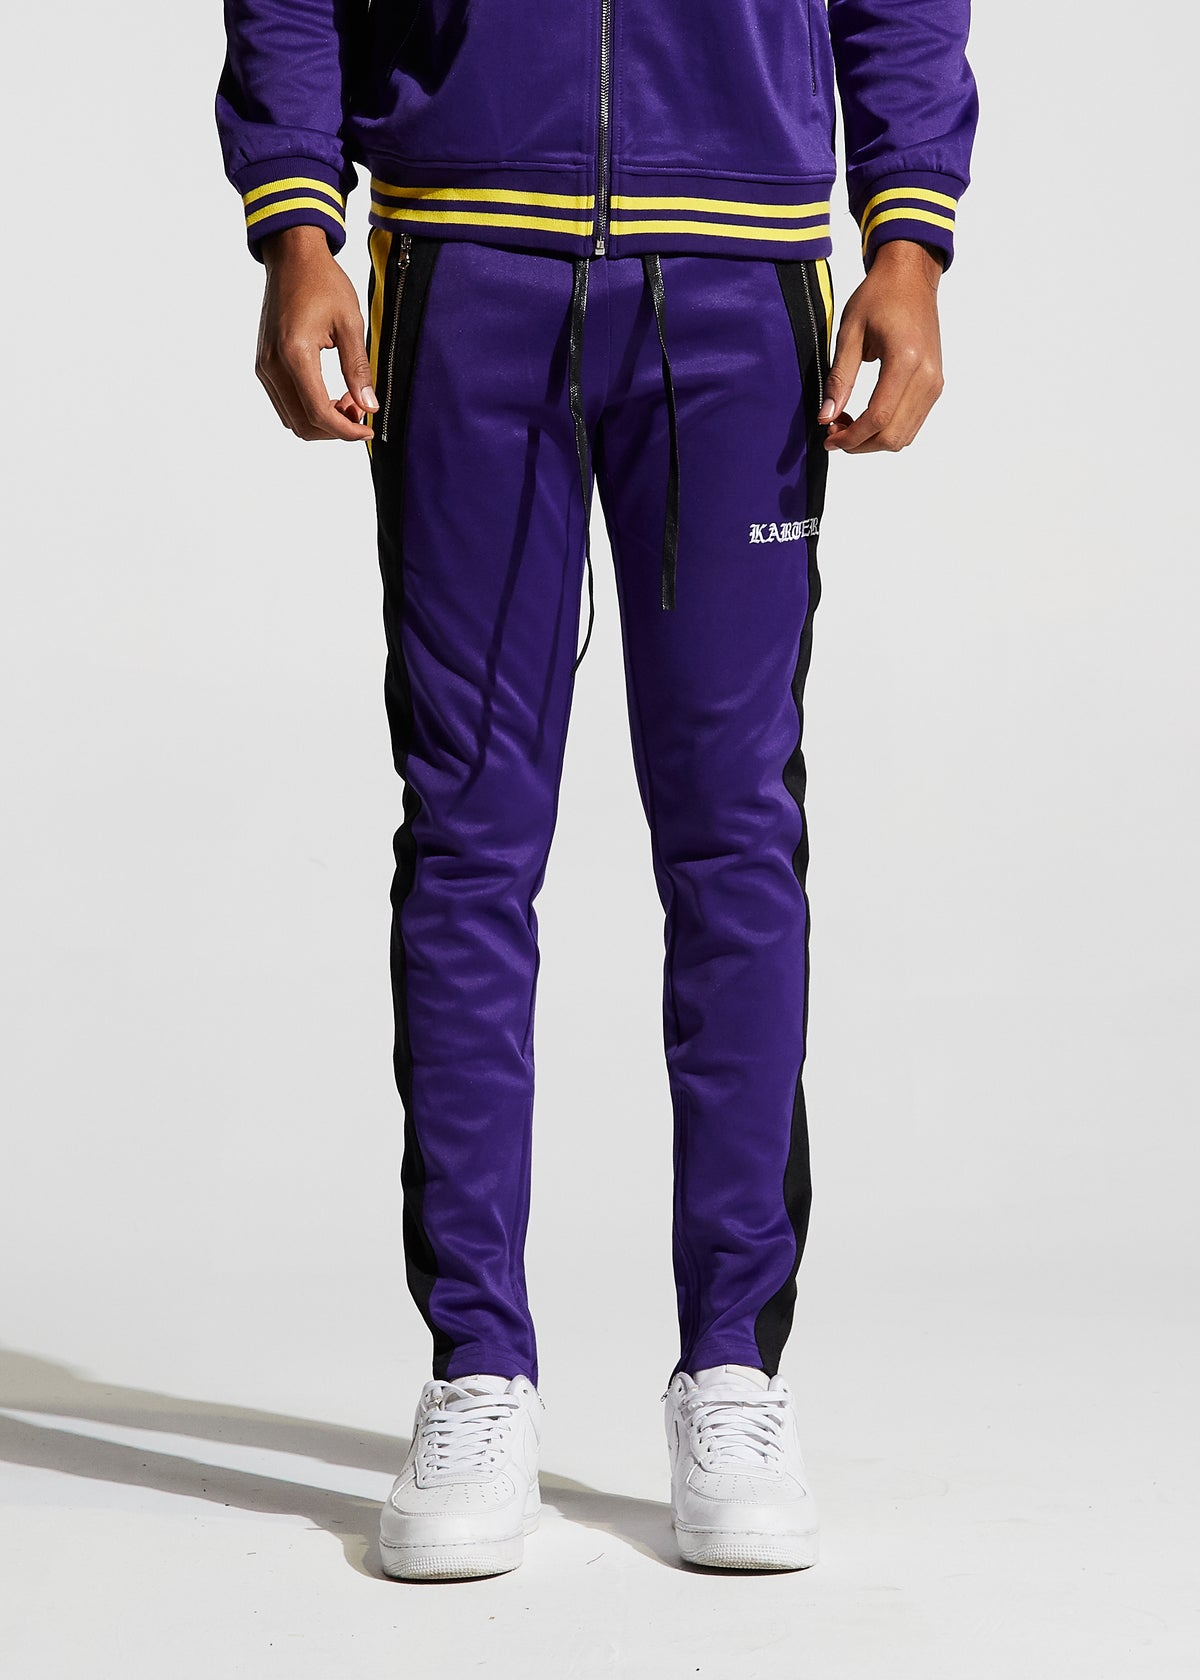 Roosevelt Track Pants (Purple)